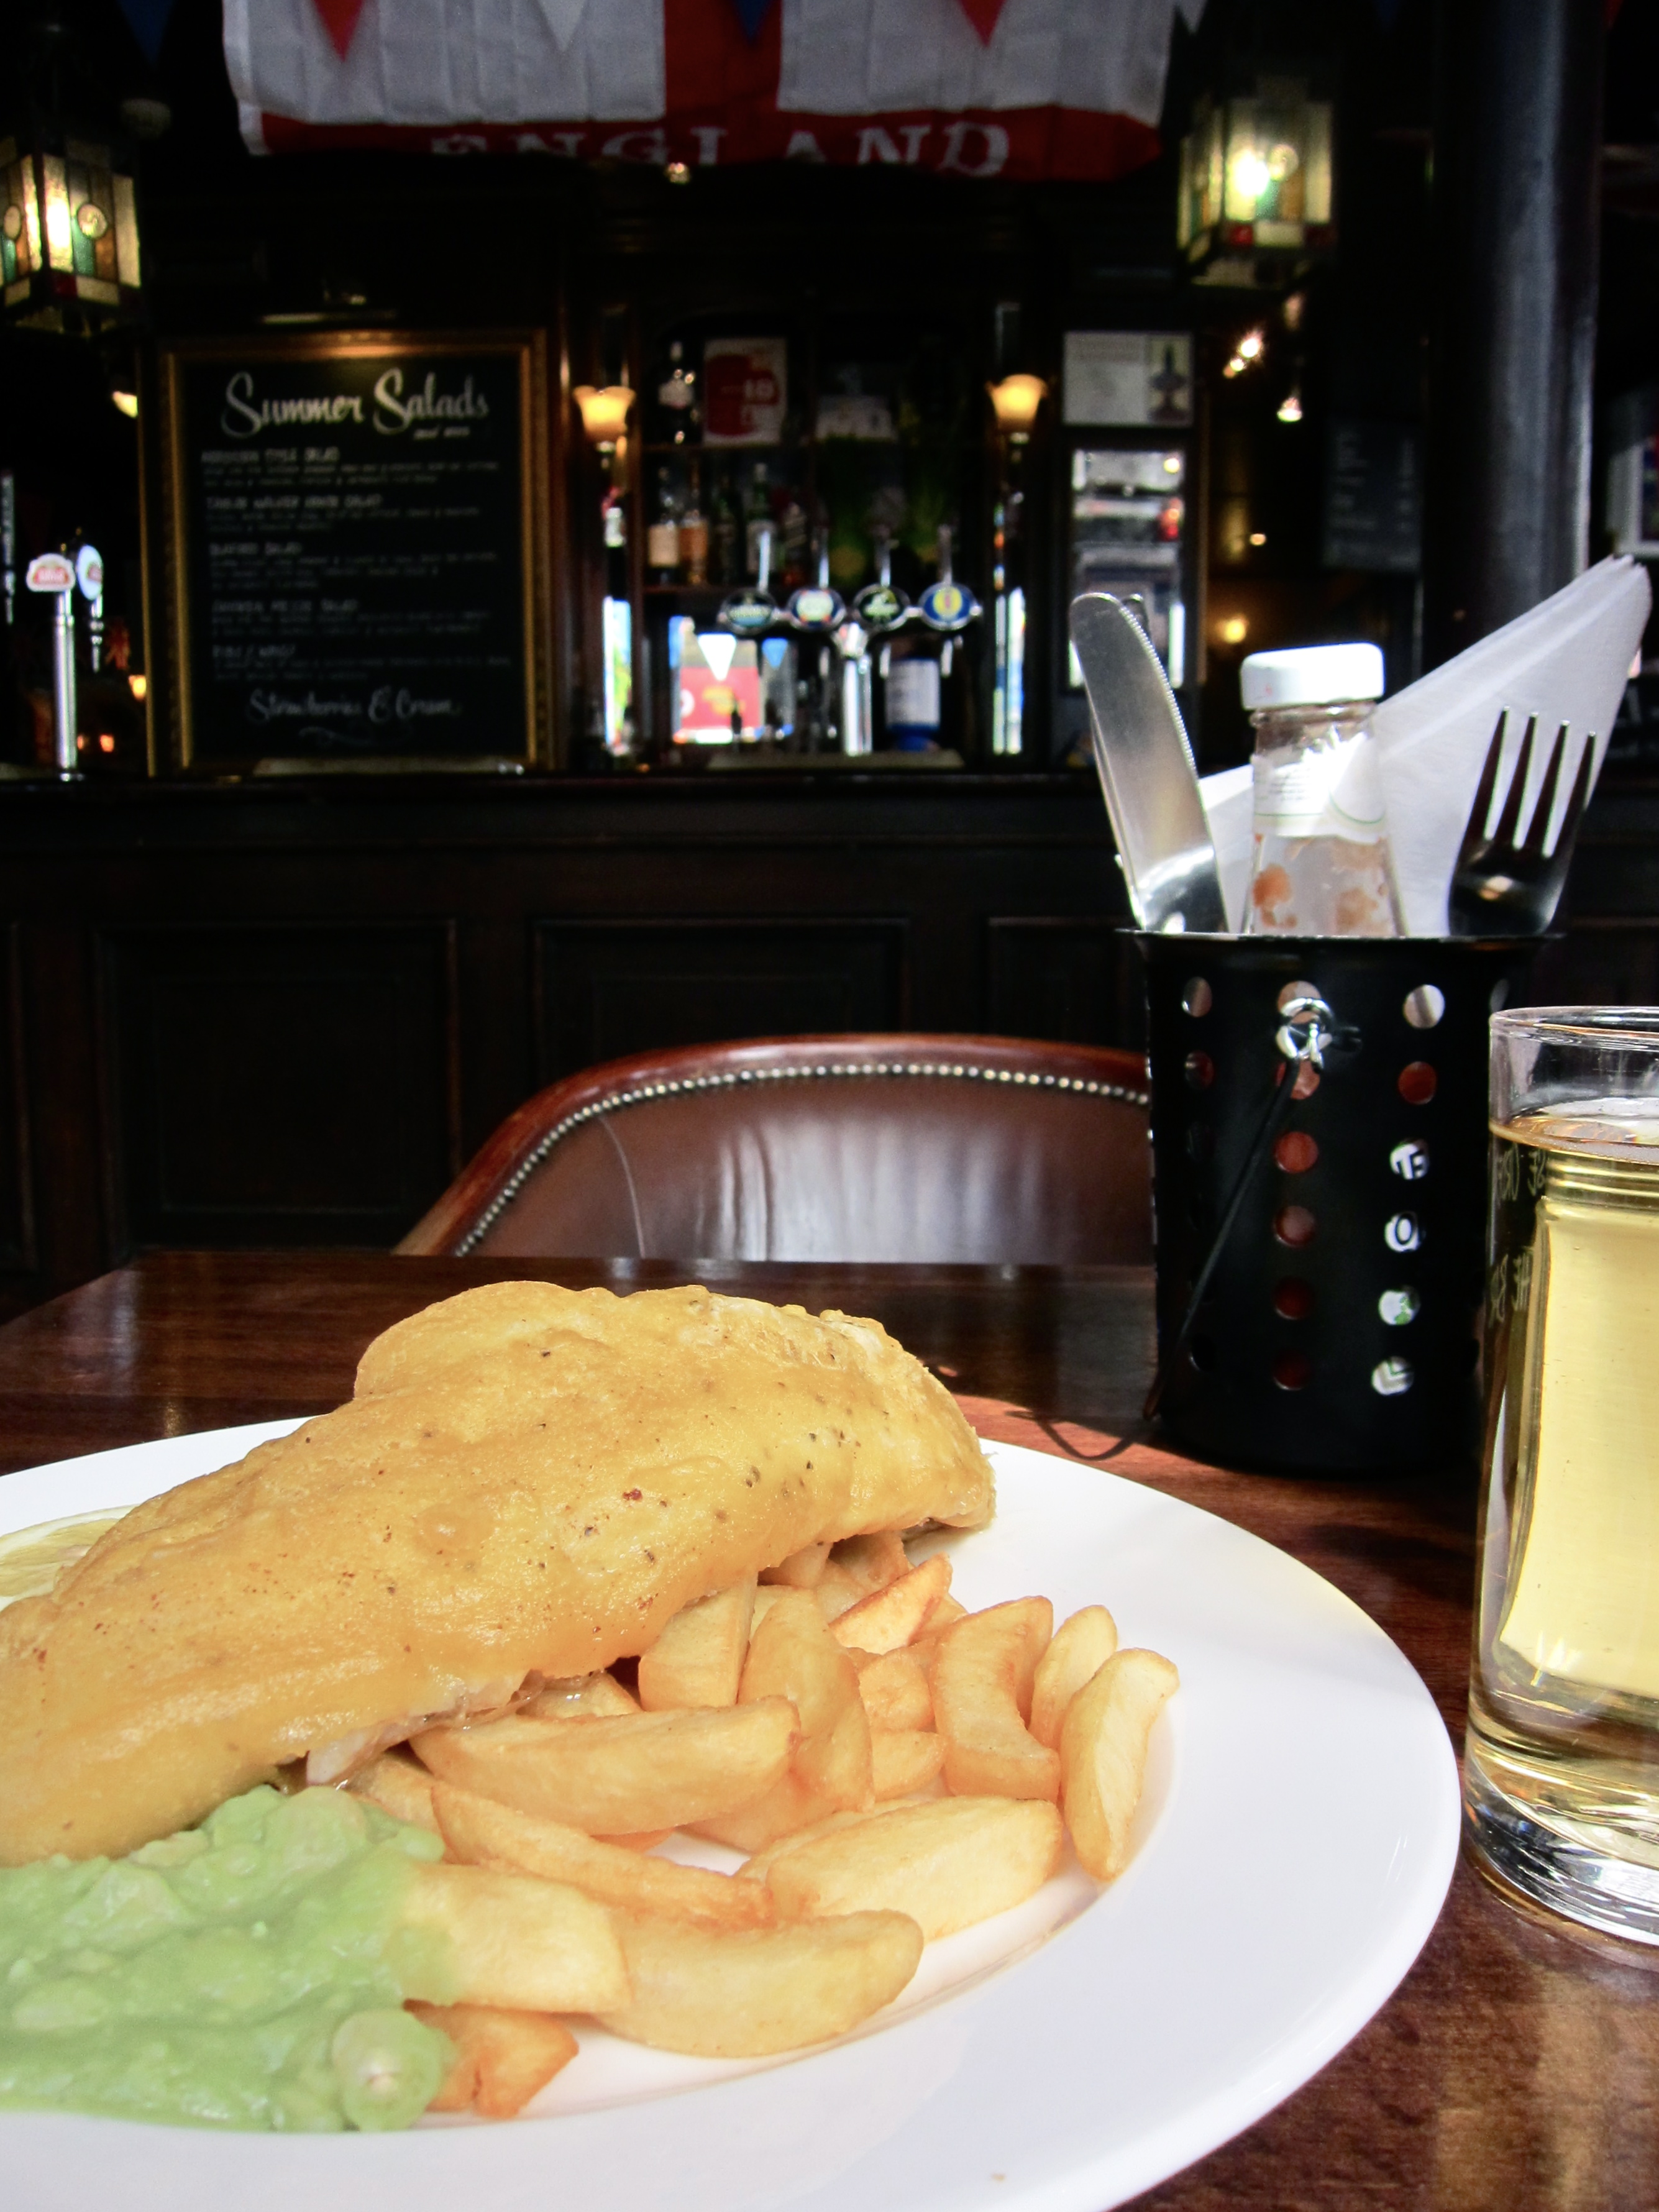 Fish and chips, London pub